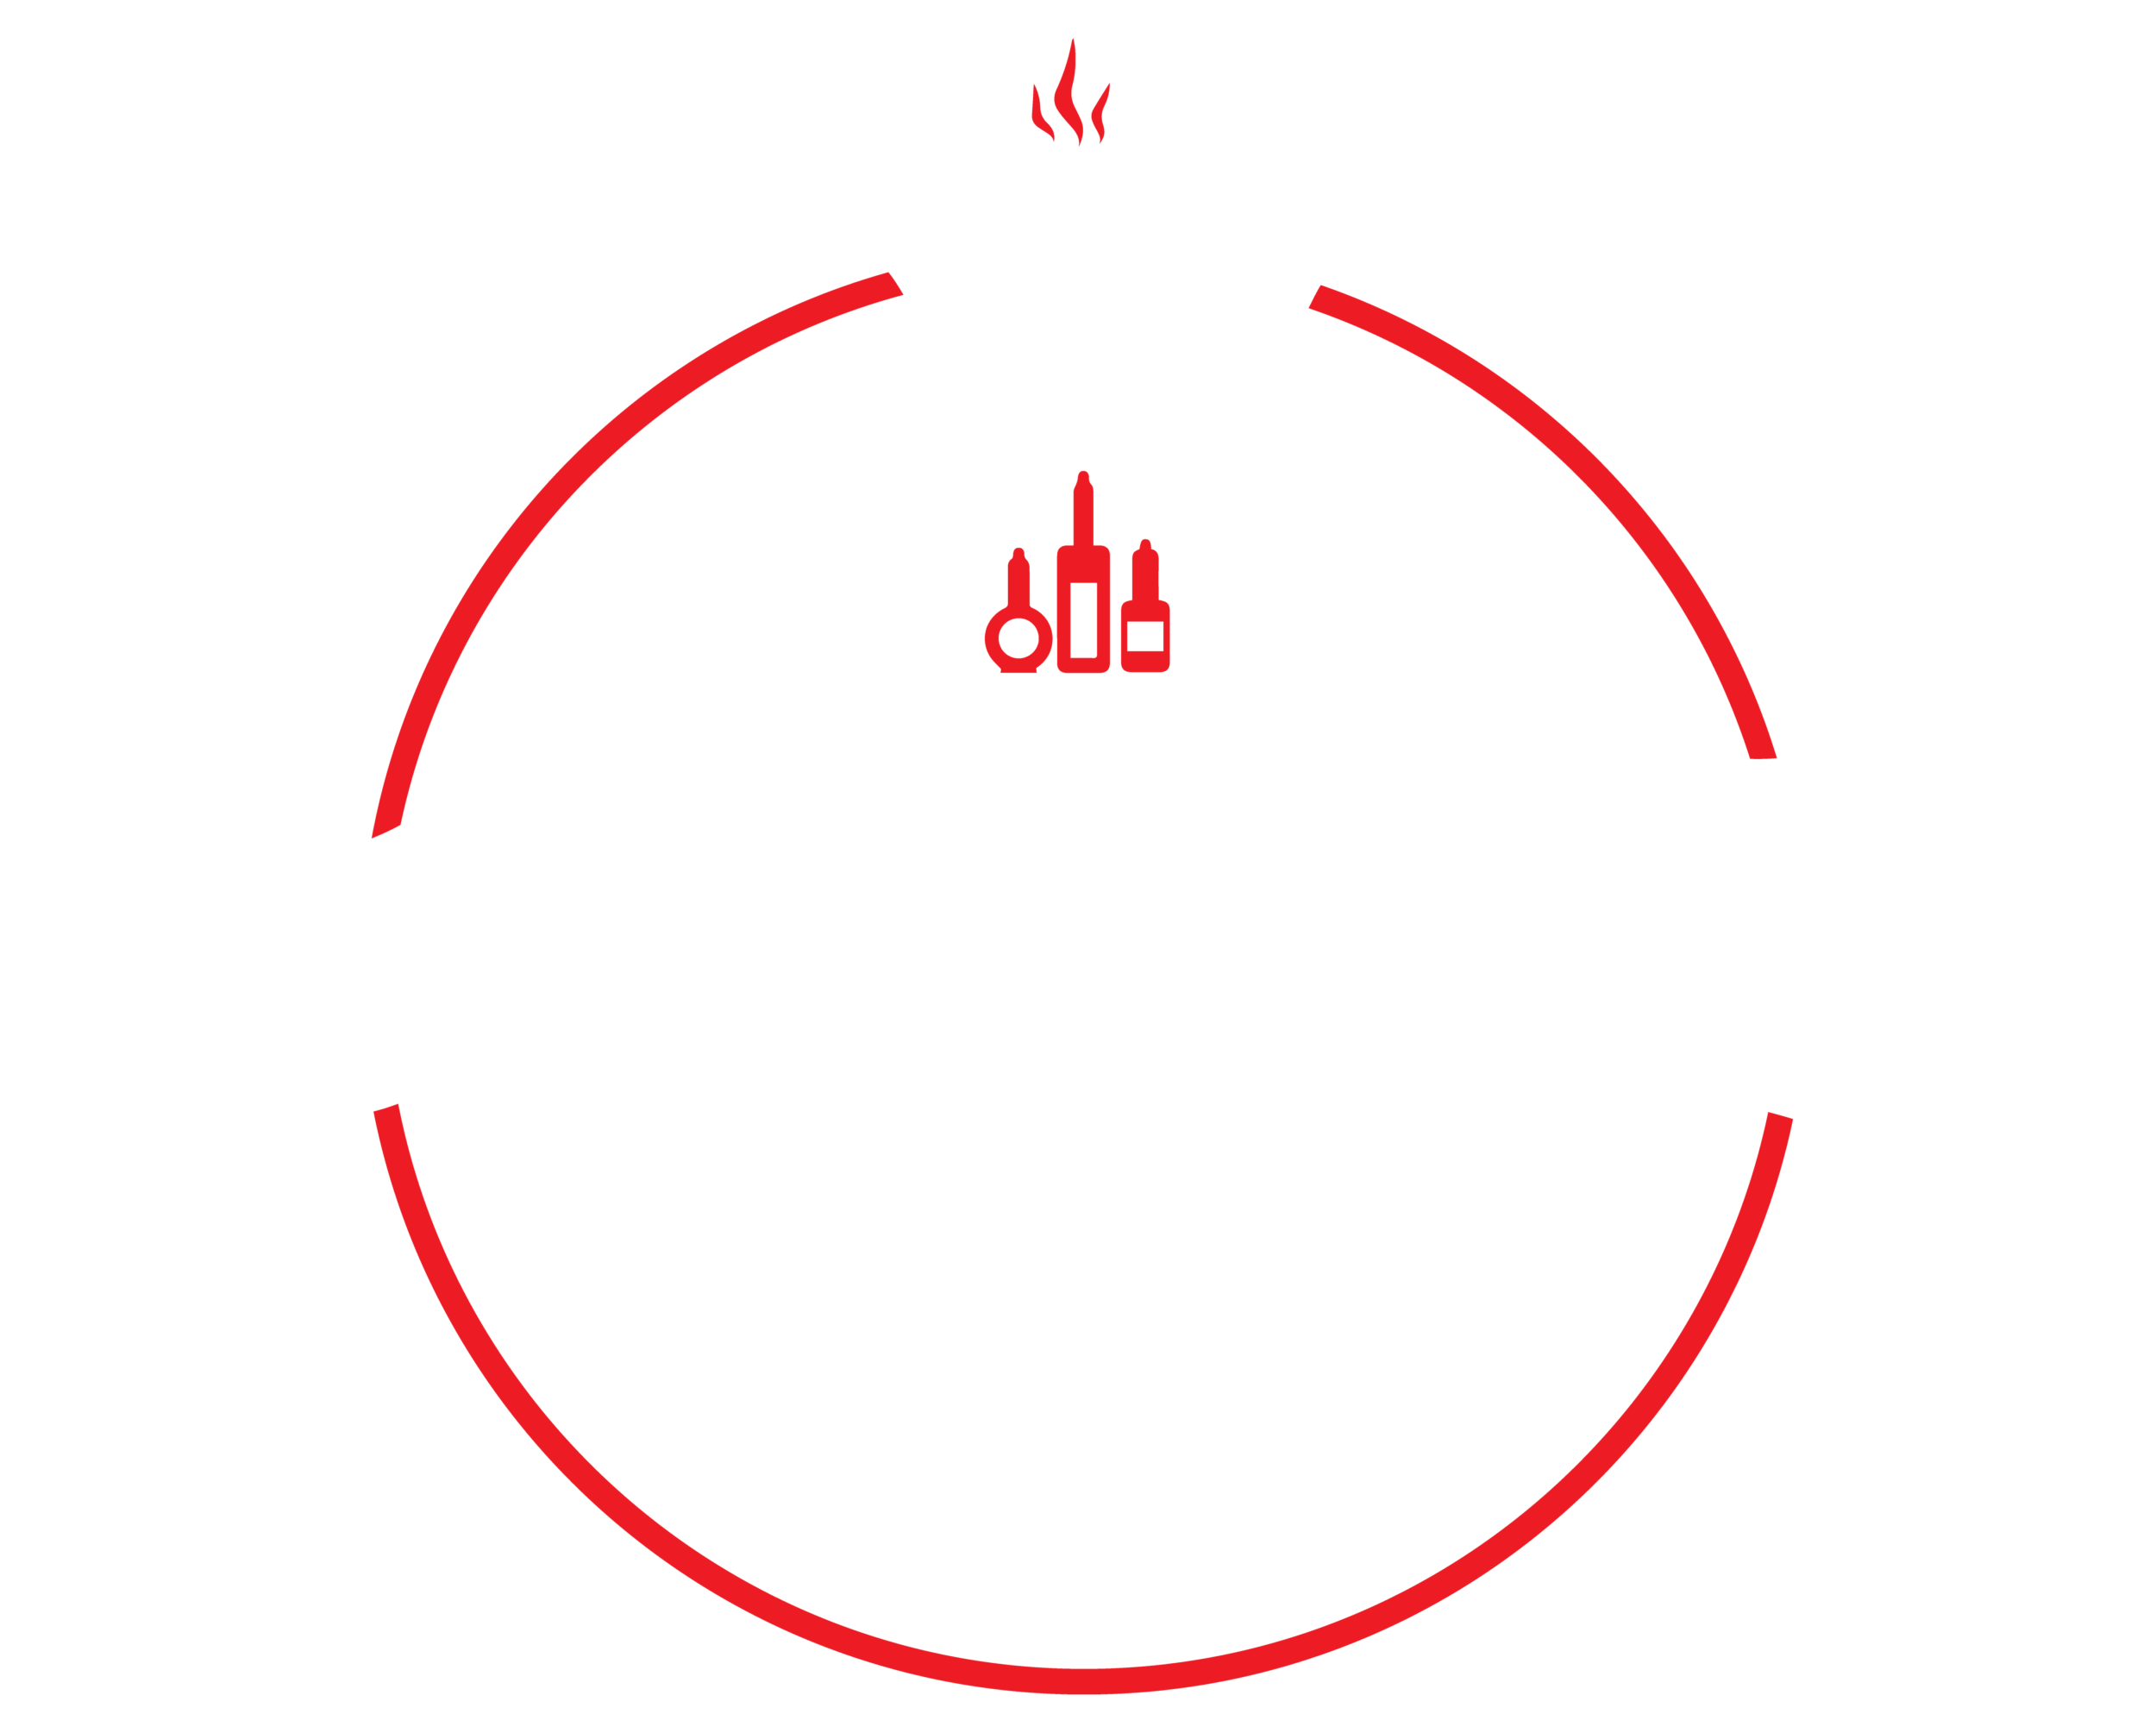 Kingston6rhythmandspice